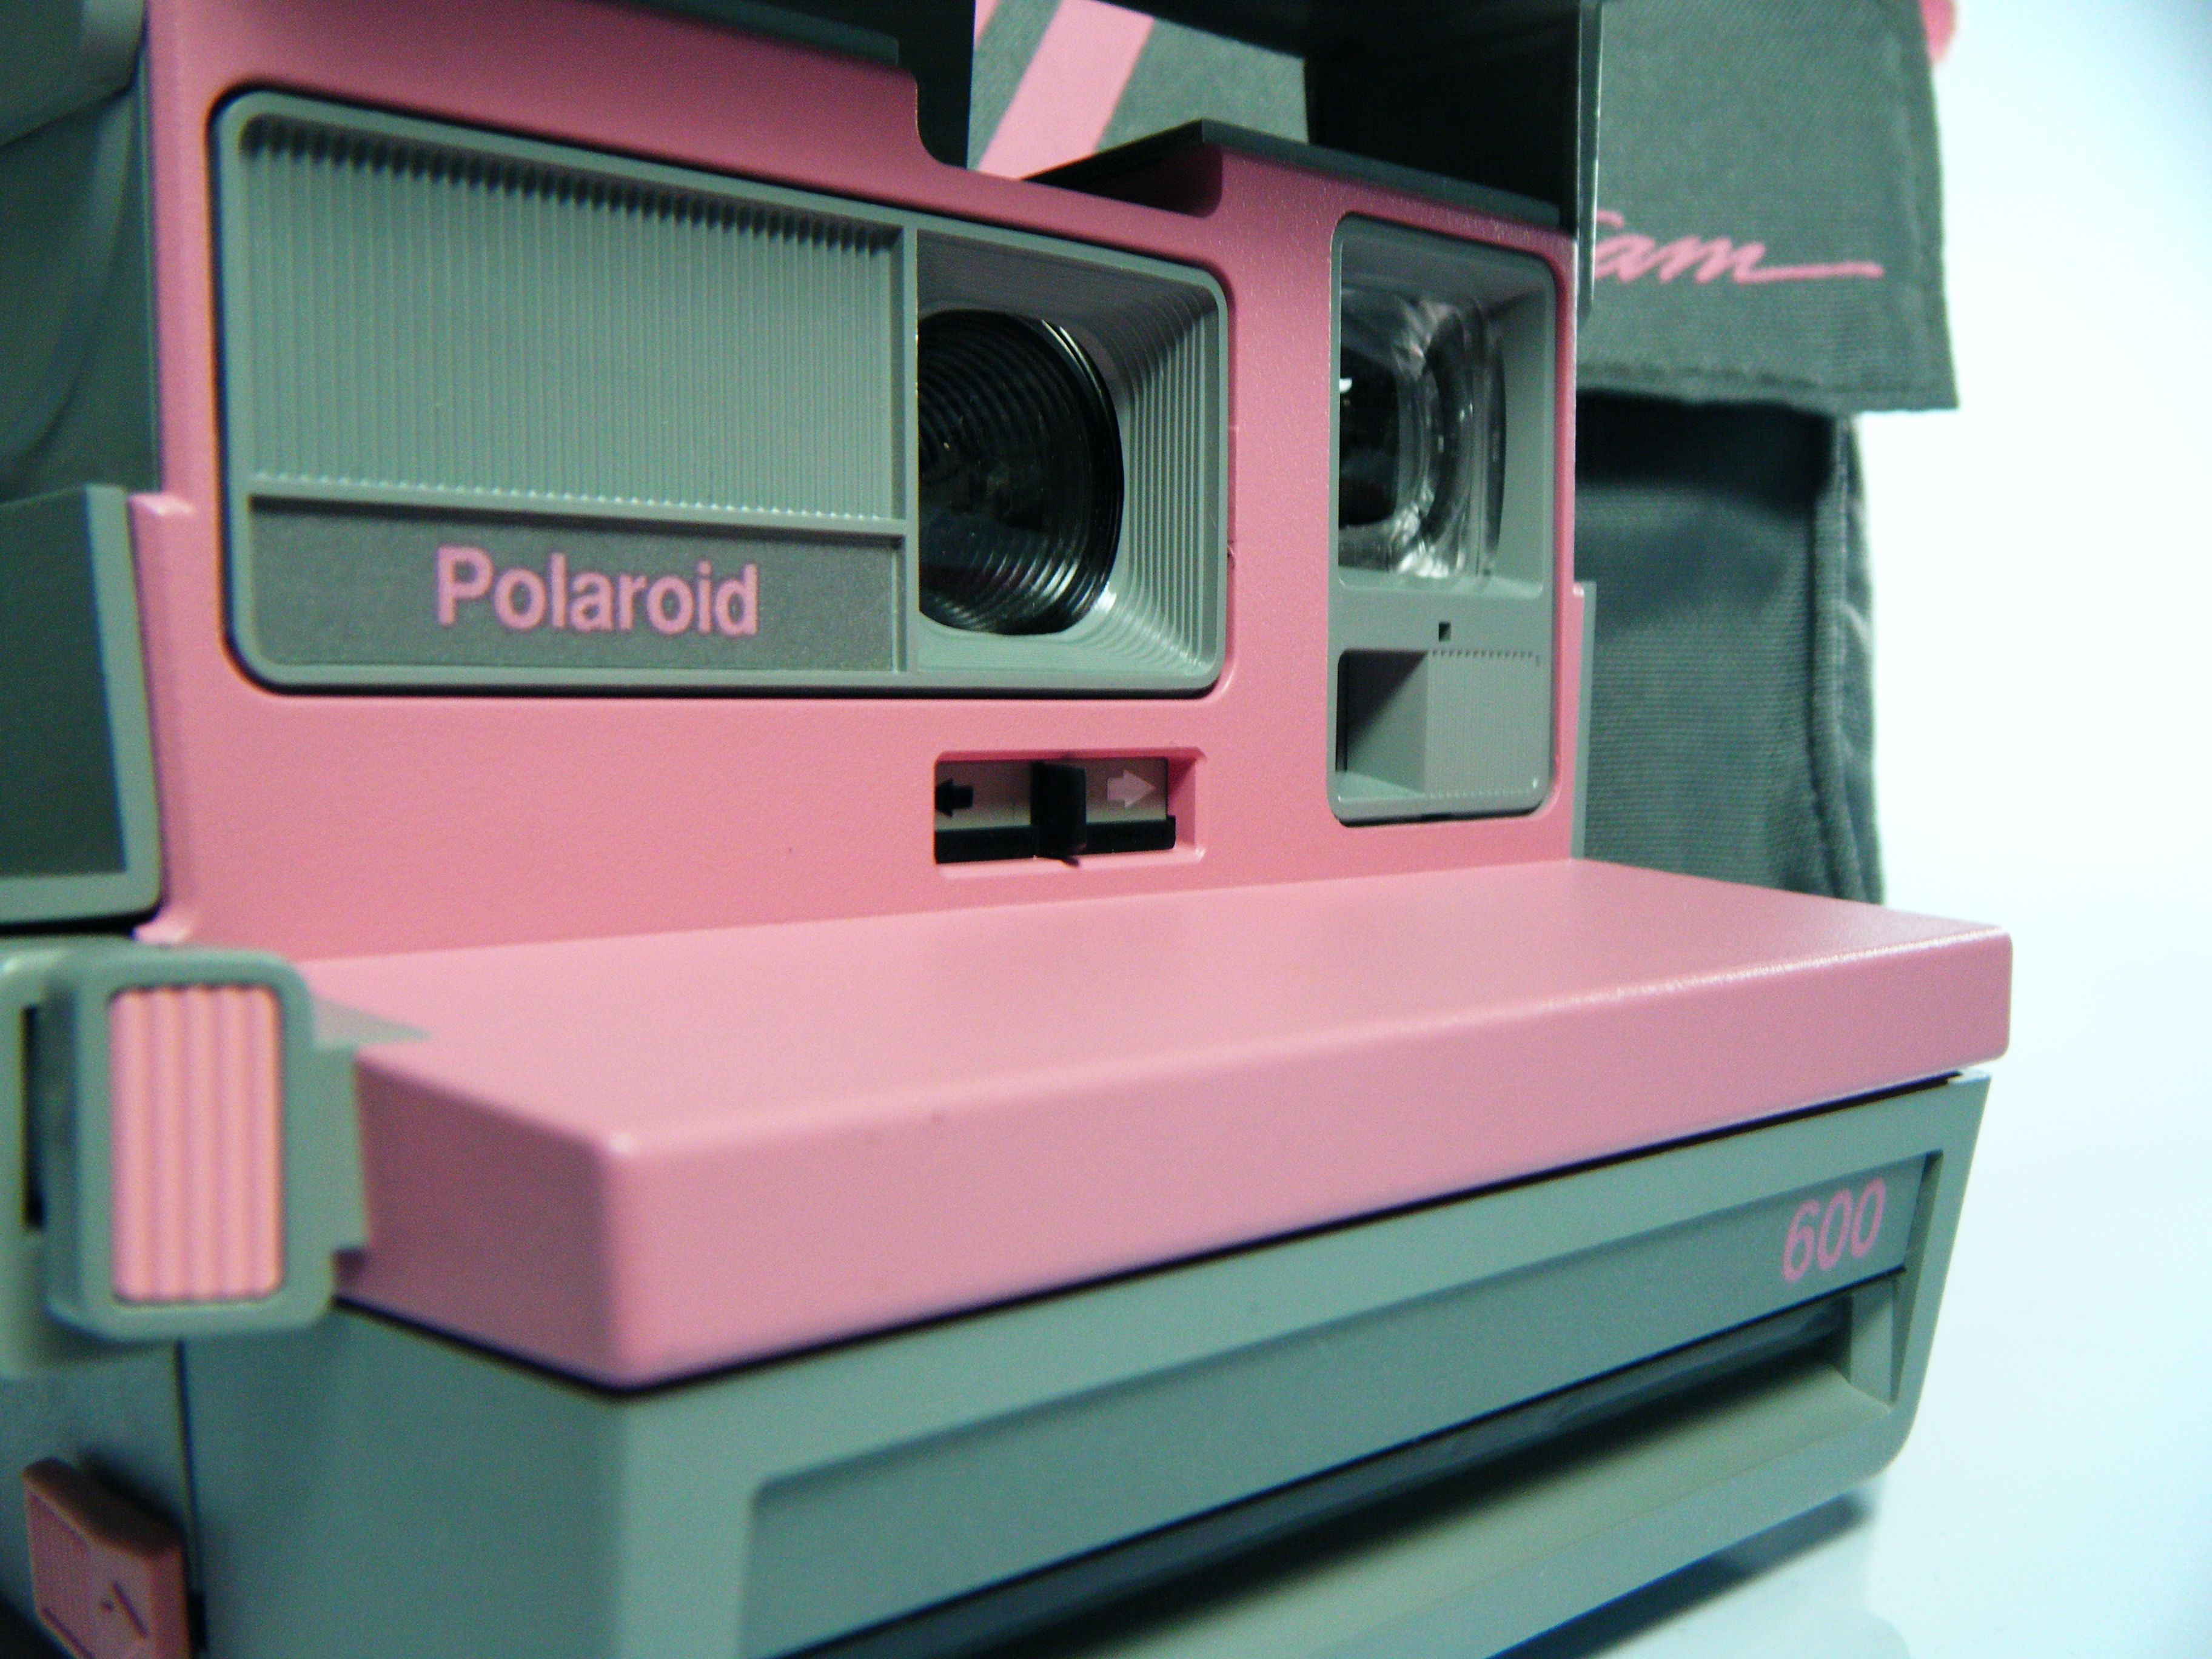 an overview of the polaroid corporation Presents an overview of polaroid corp, one of the leading instant imaging companies in the world company overview, including products offered, and principal businesses key facts, including contact information analysis of the company, including strengths, weaknesses, opportunities for improvement .